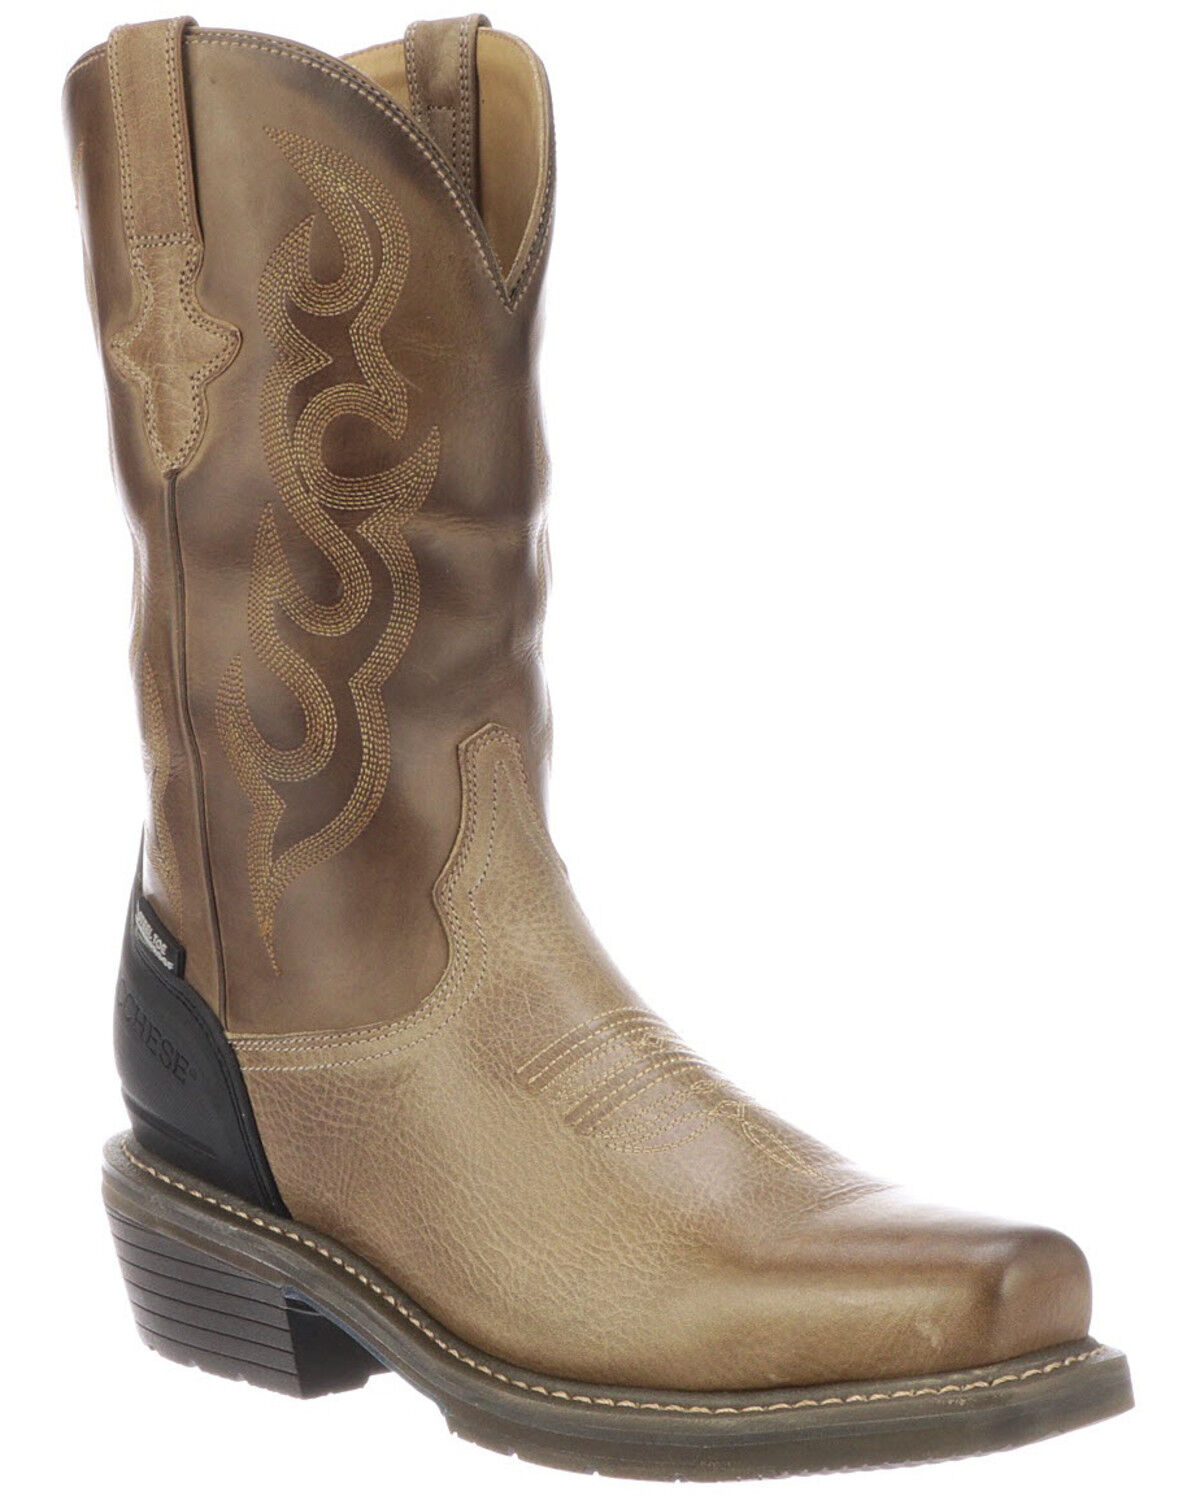 Lucchese Men's Waterproof Welted